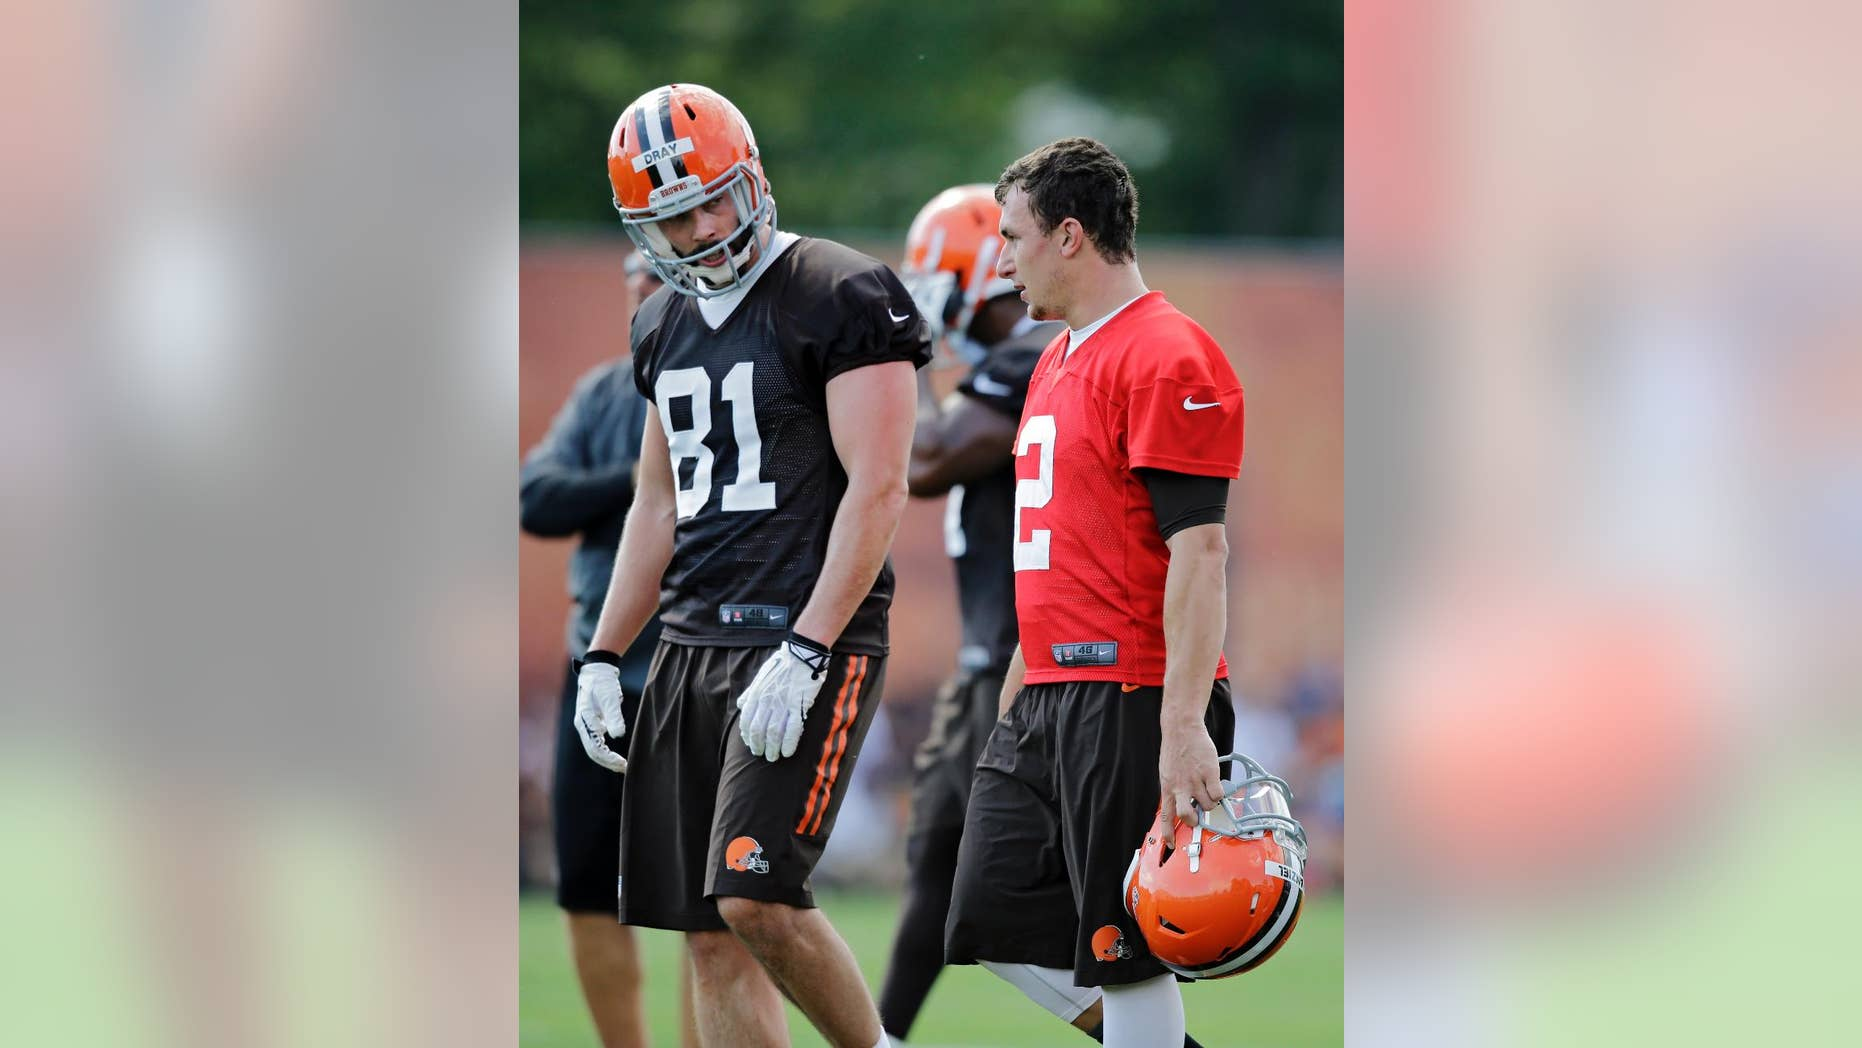 Cleveland Browns quarterback Johnny Manziel (2) talks with tight end Jim Dray (81) during the first practice at the NFL football team's training camp in Berea, Ohio Saturday, July 26, 2014. (AP Photo)